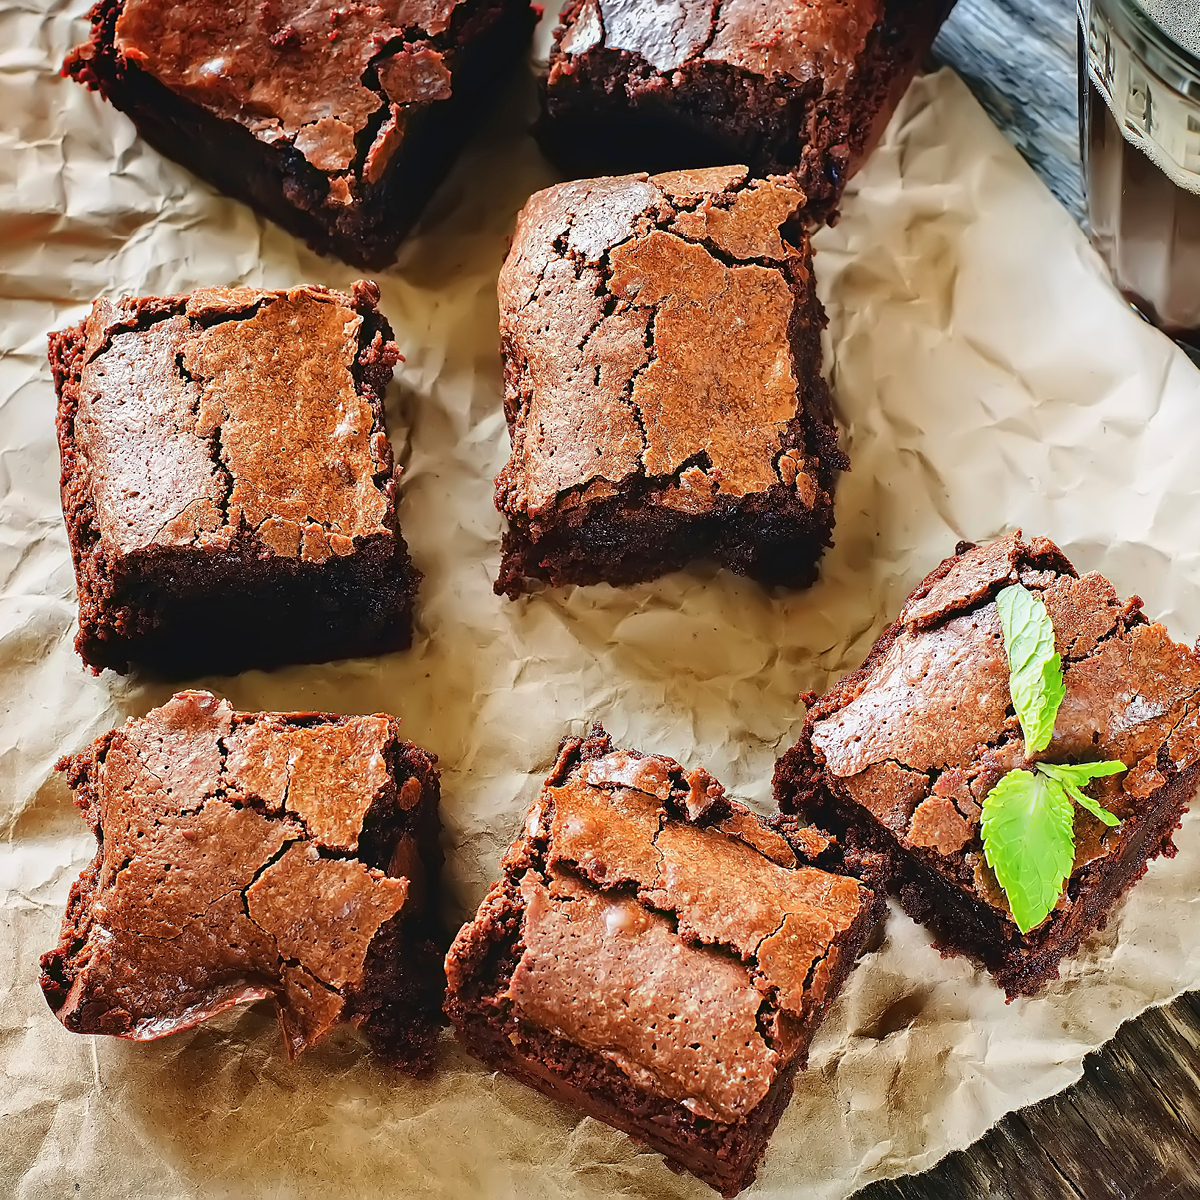 Warm Fudge Brownies